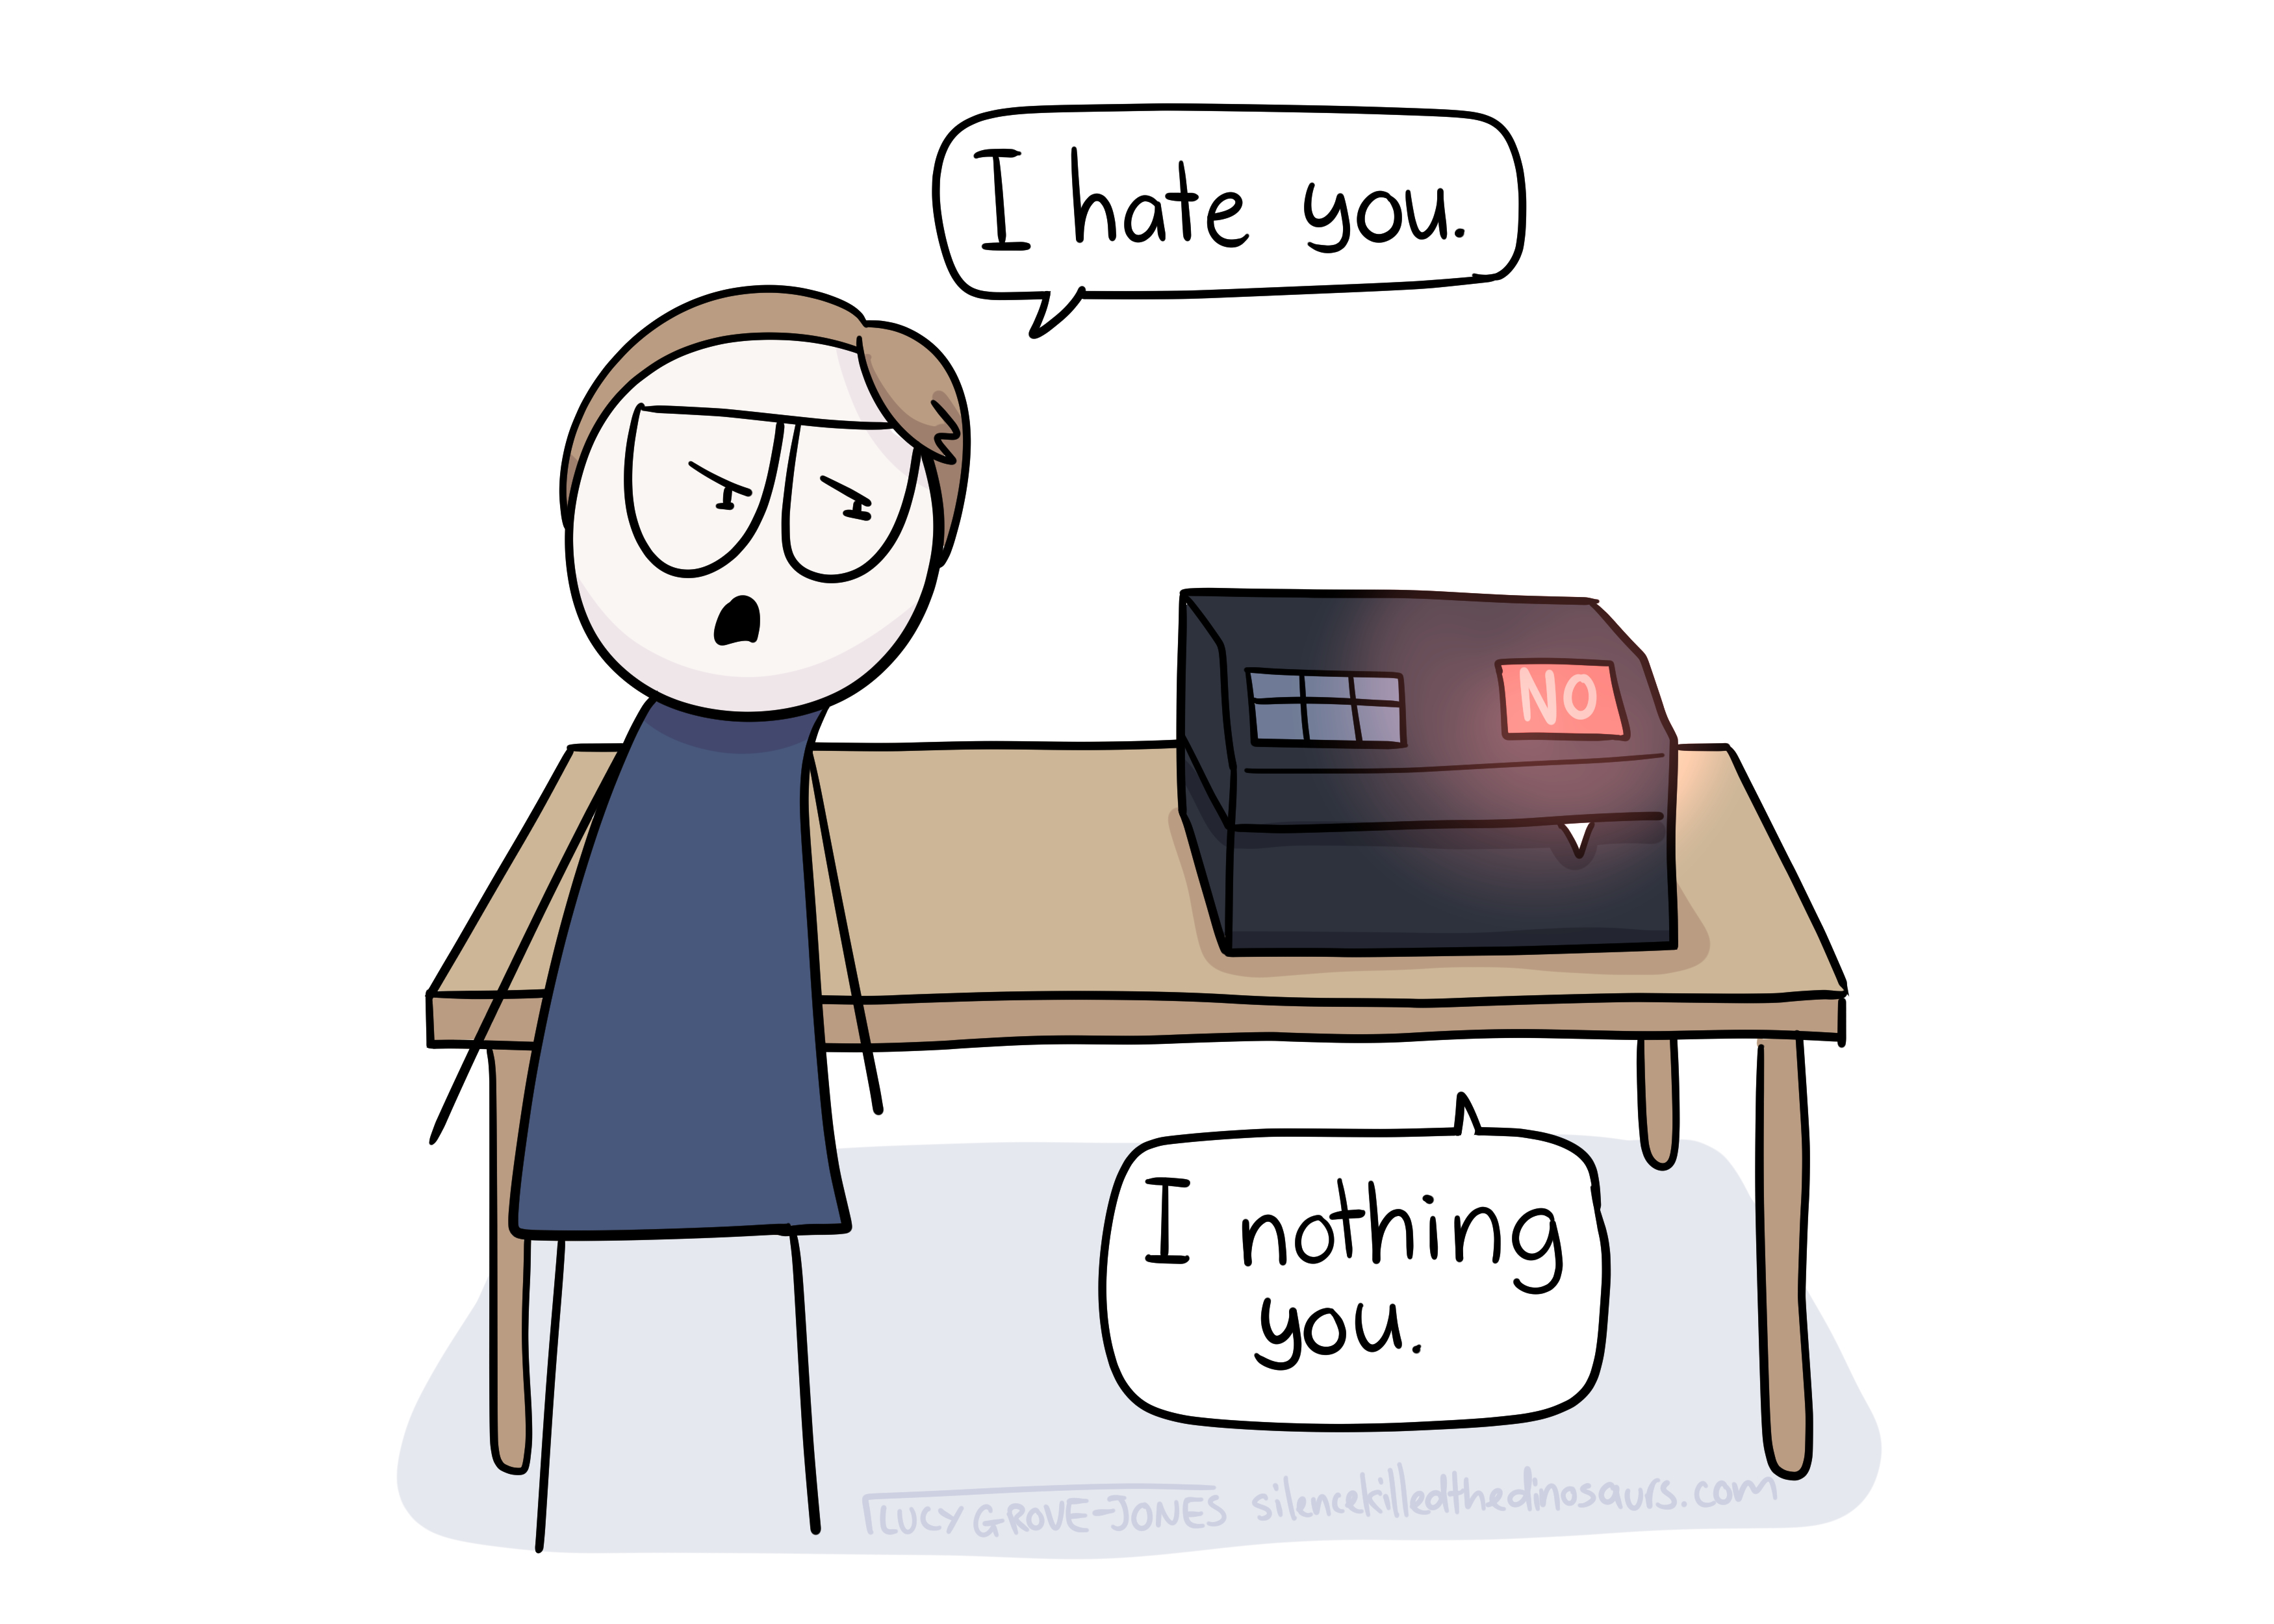 """Comic Lucy glares at a scanner on a desk. She says """"I hate you"""". The scanner replies """"I nothing you""""."""